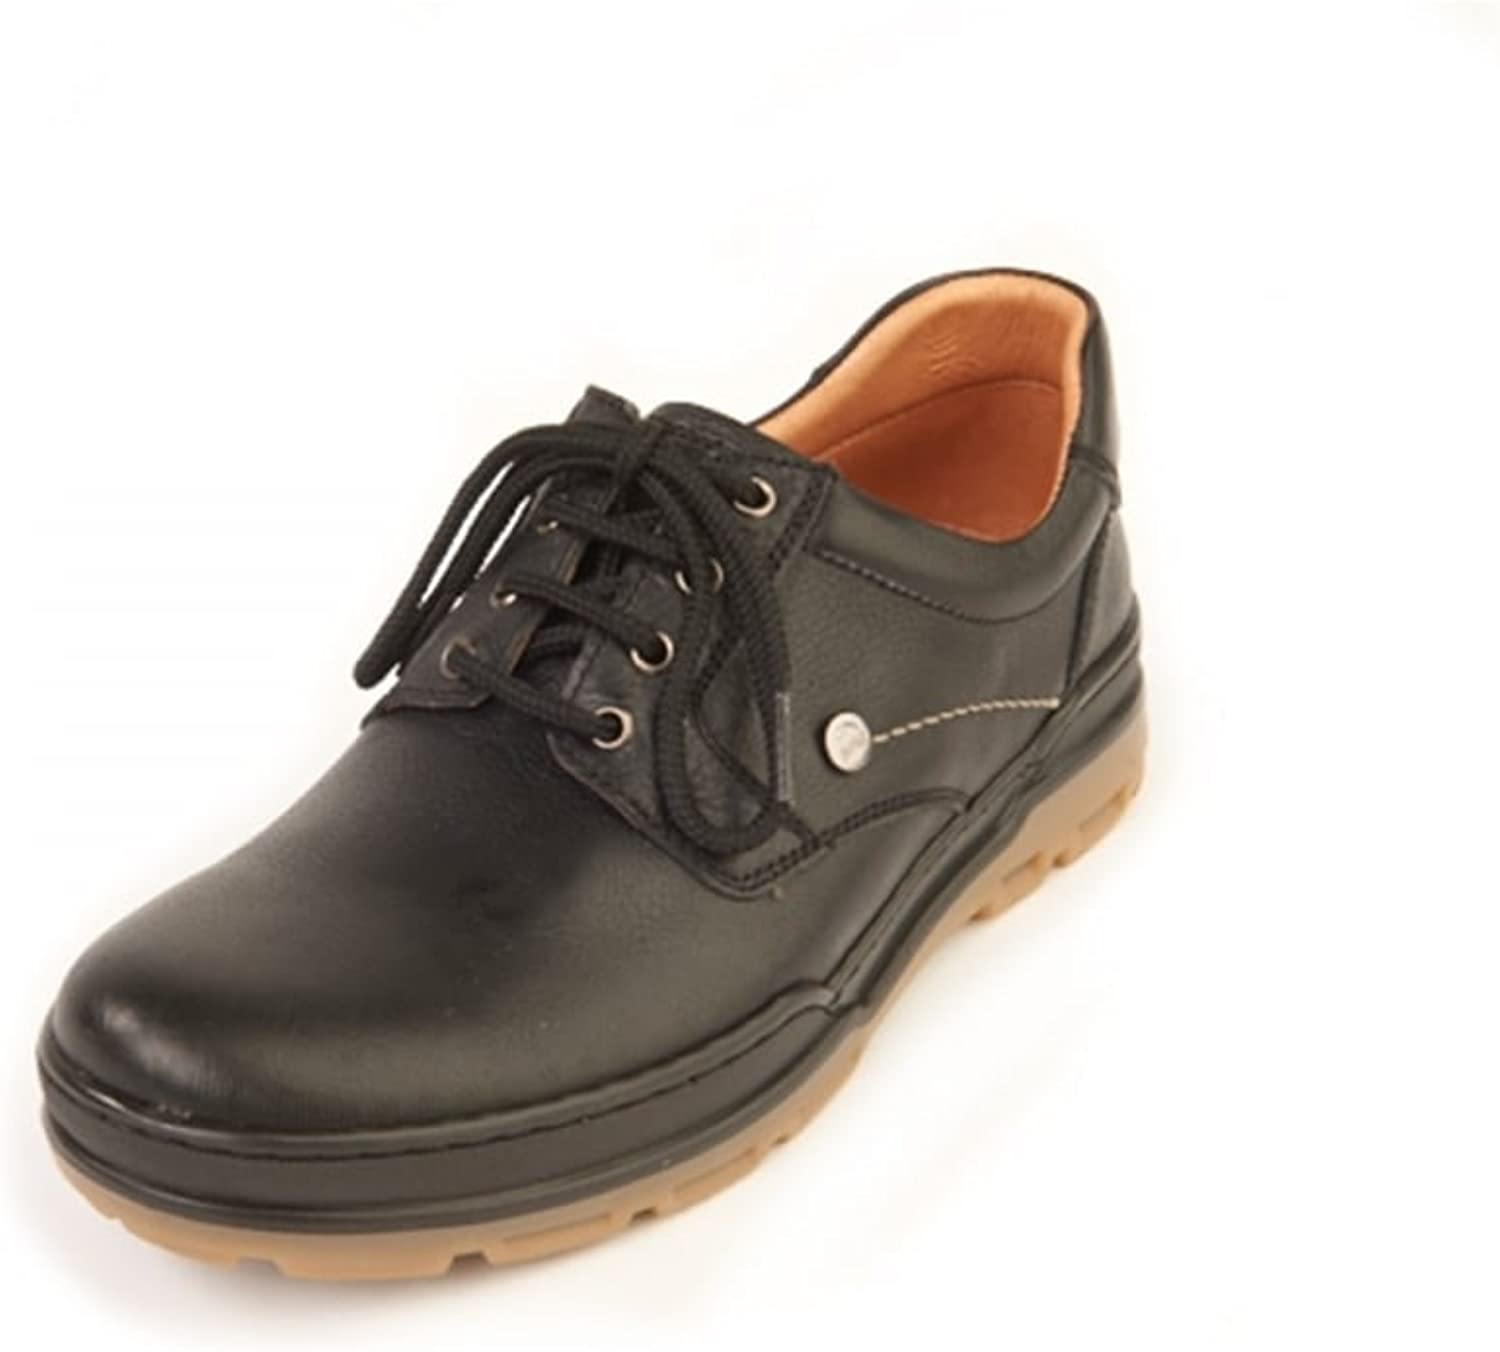 Softwalk Keith Black Casual, Comfort, Wide Fit